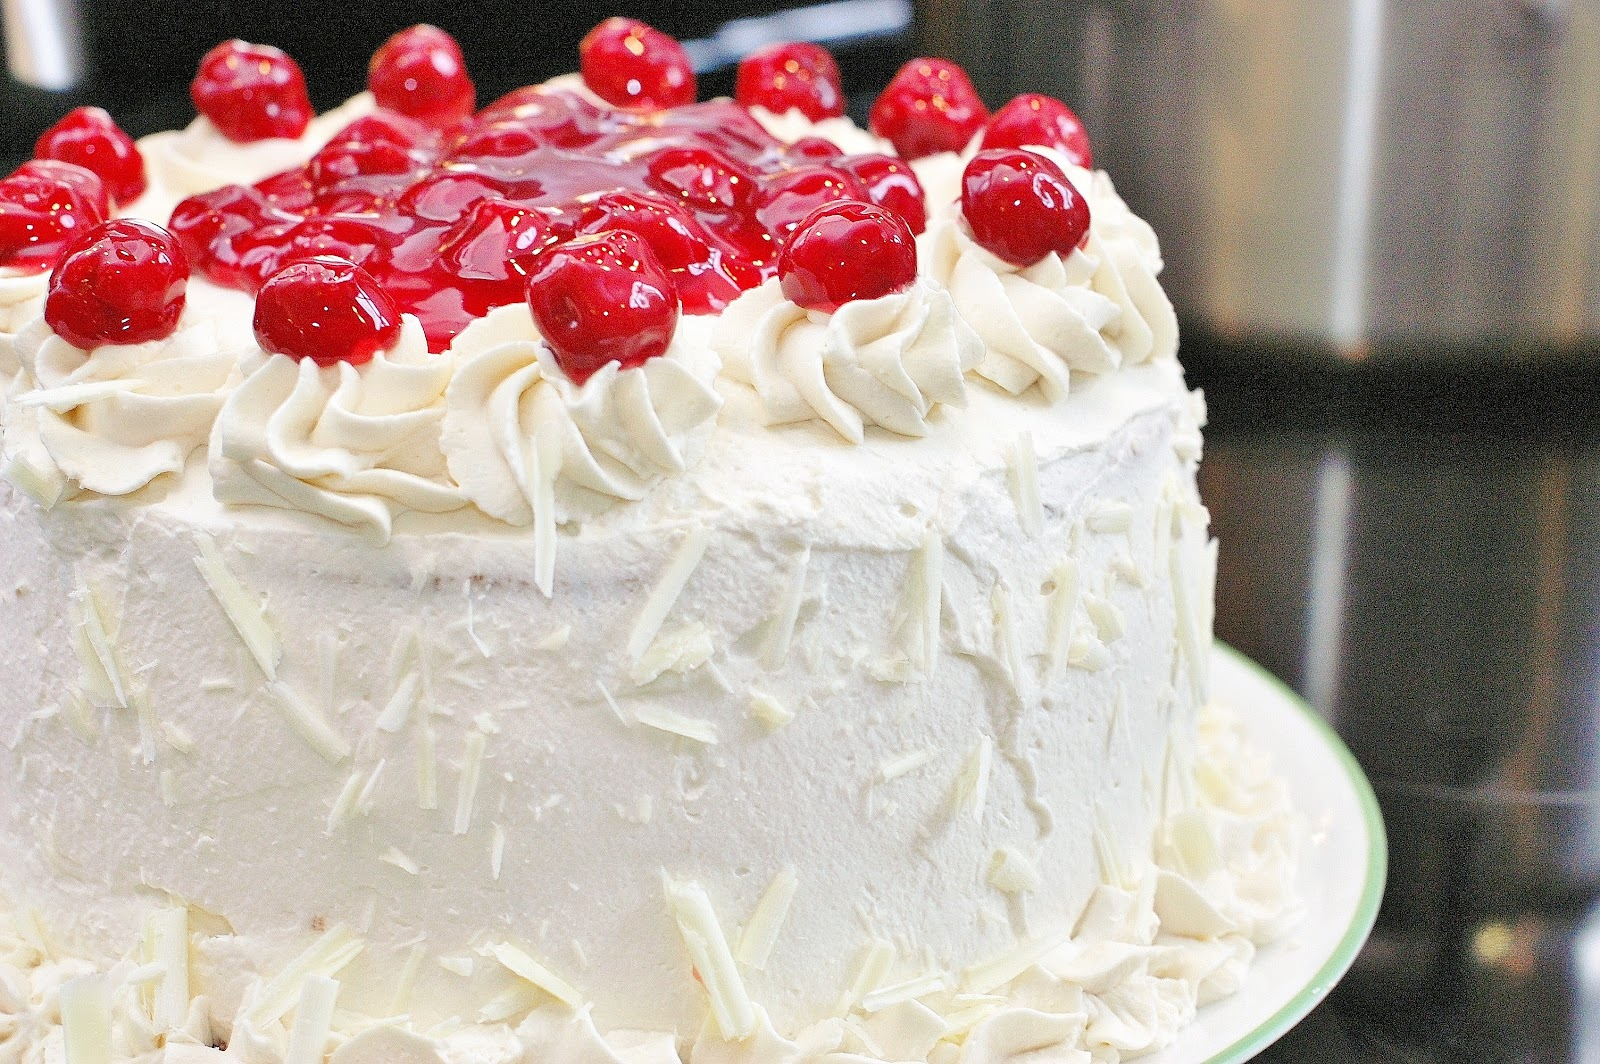 How To Make White Forest Cake At Home